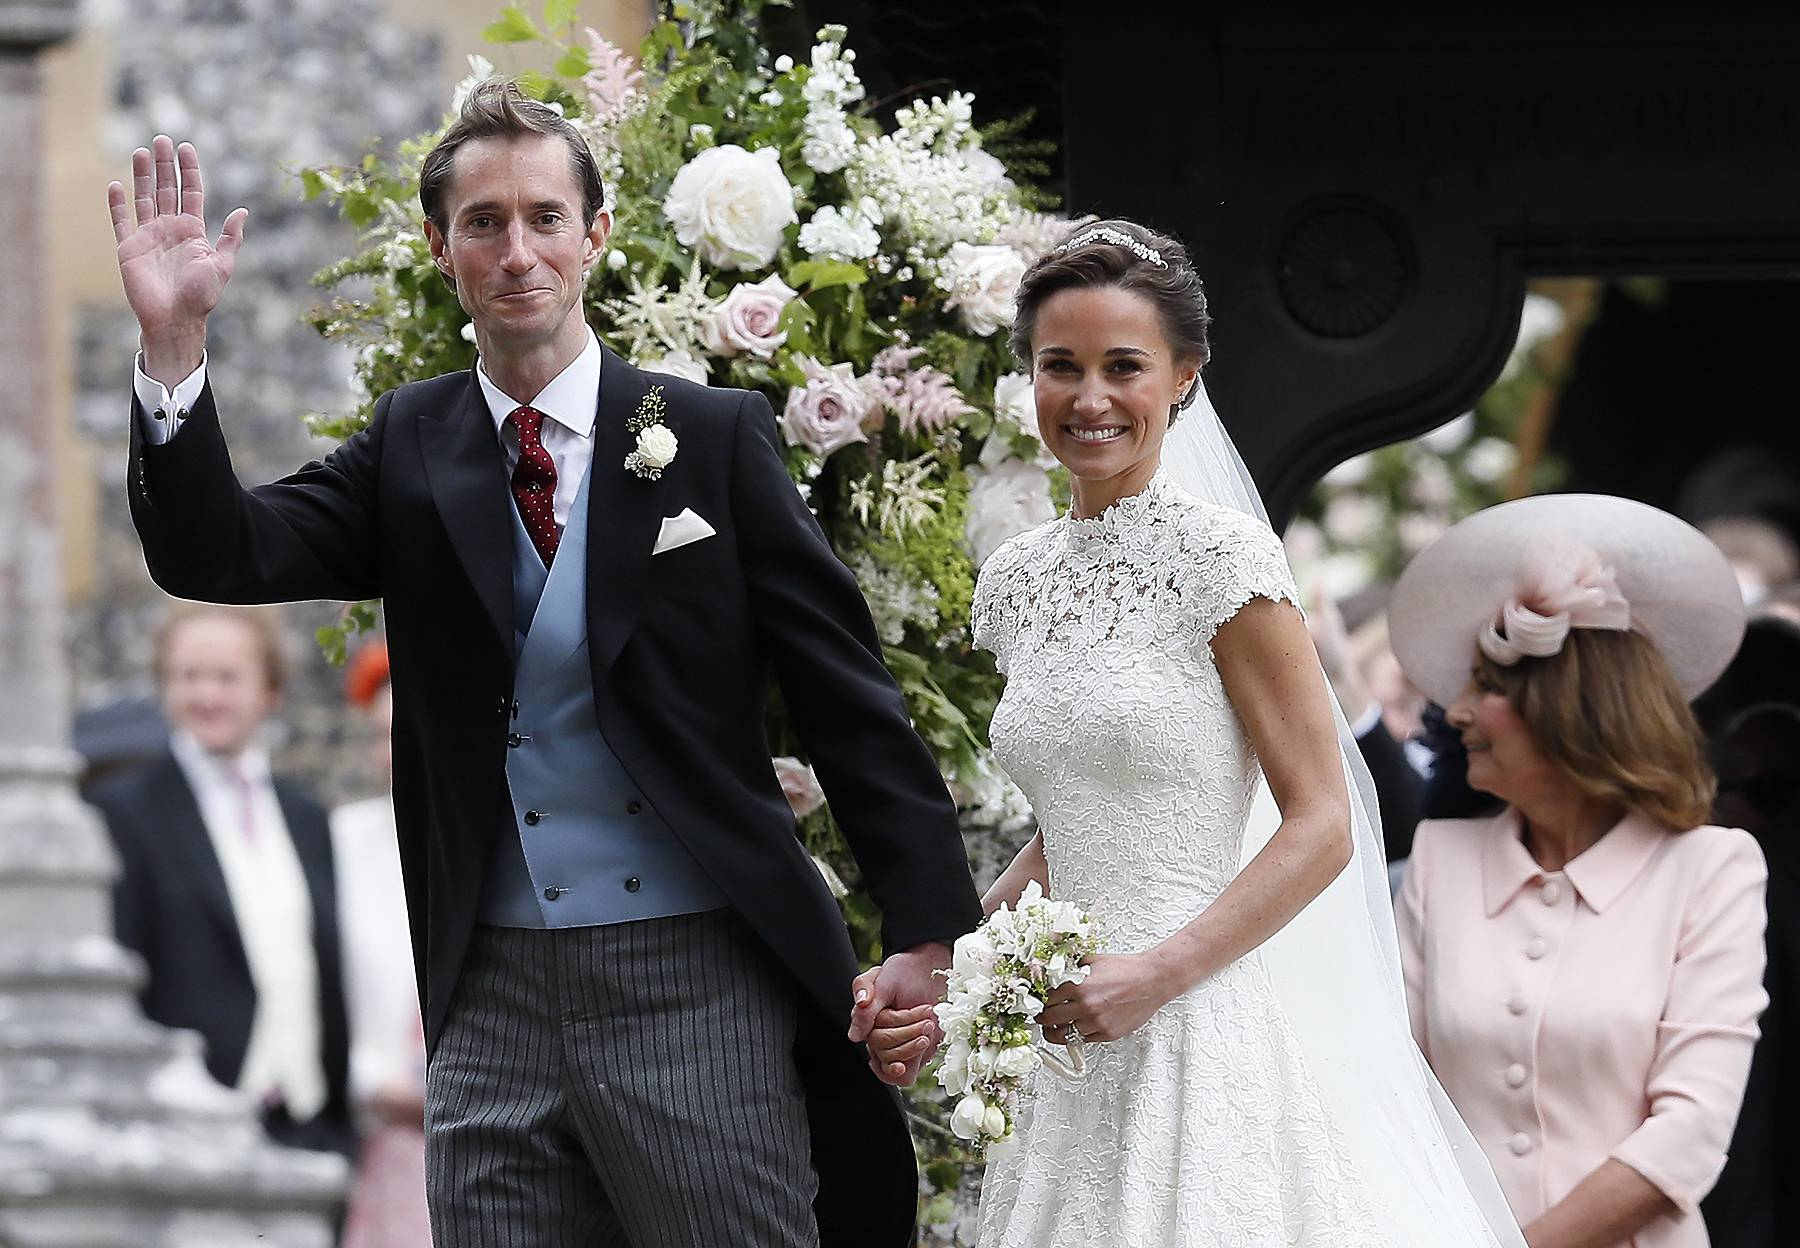 Pippa Middleton and James Matthews smile for the cameras after their wedding at St Mark's Church on May 20, 2017 in Englefield, England. Middleton, the sister of Catherine, Duchess of Cambridge married hedge fund manager James Matthews in a ceremony Saturday where her niece and nephew Prince George and Princess Charlotte was in the wedding party, along with sister Kate and princes Harry and William. (Photo: Kirsty Wigglesworth - Pool/Getty Images)